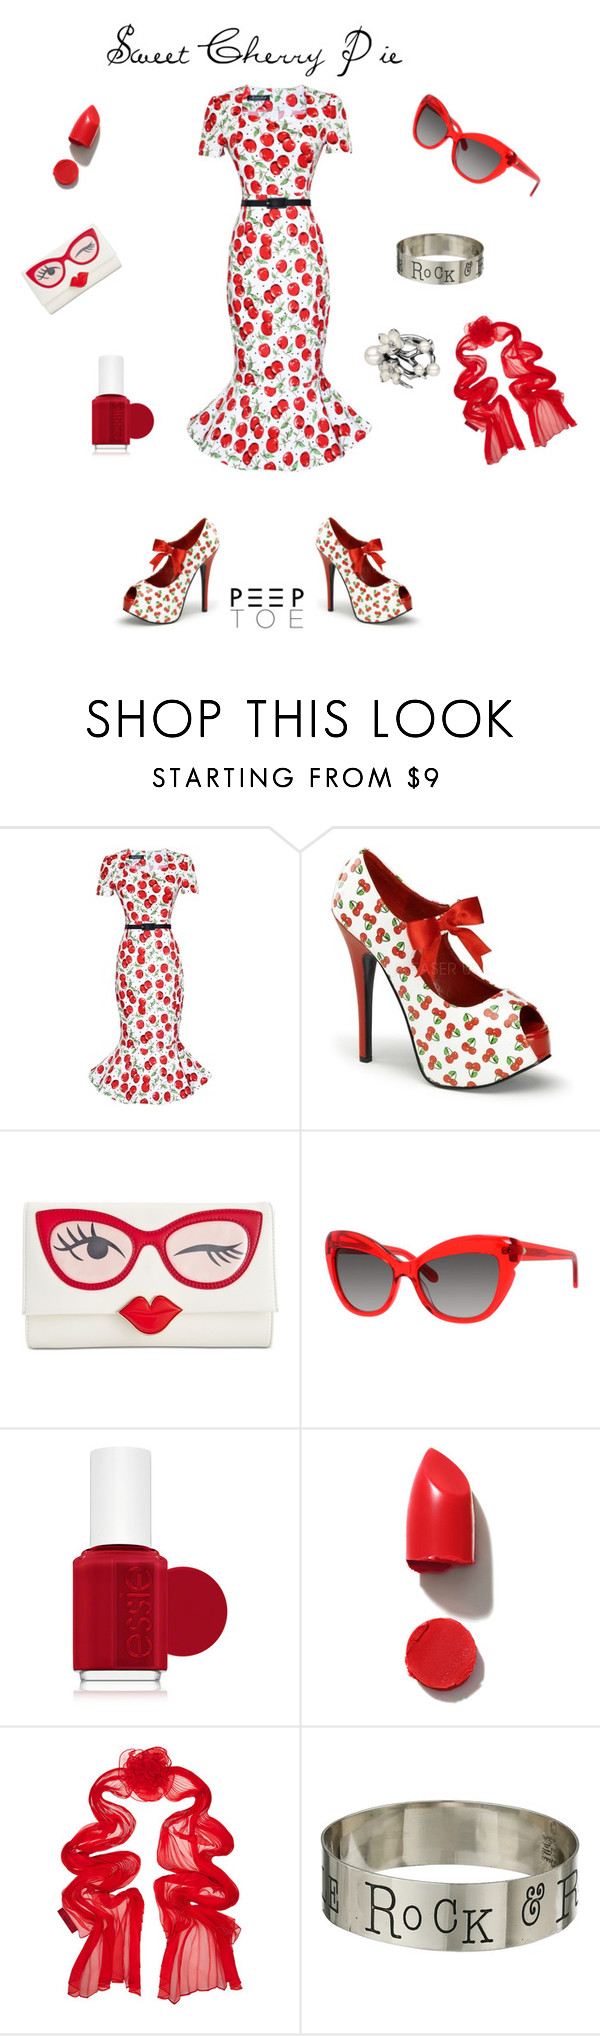 """Sweet Cherry Pie"" by masters-pj ❤ liked on Polyvore featuring Kate Spade, Essie, NARS Cosmetics, Valentino, Gypsy SOULE, Shaun Leane and modern"